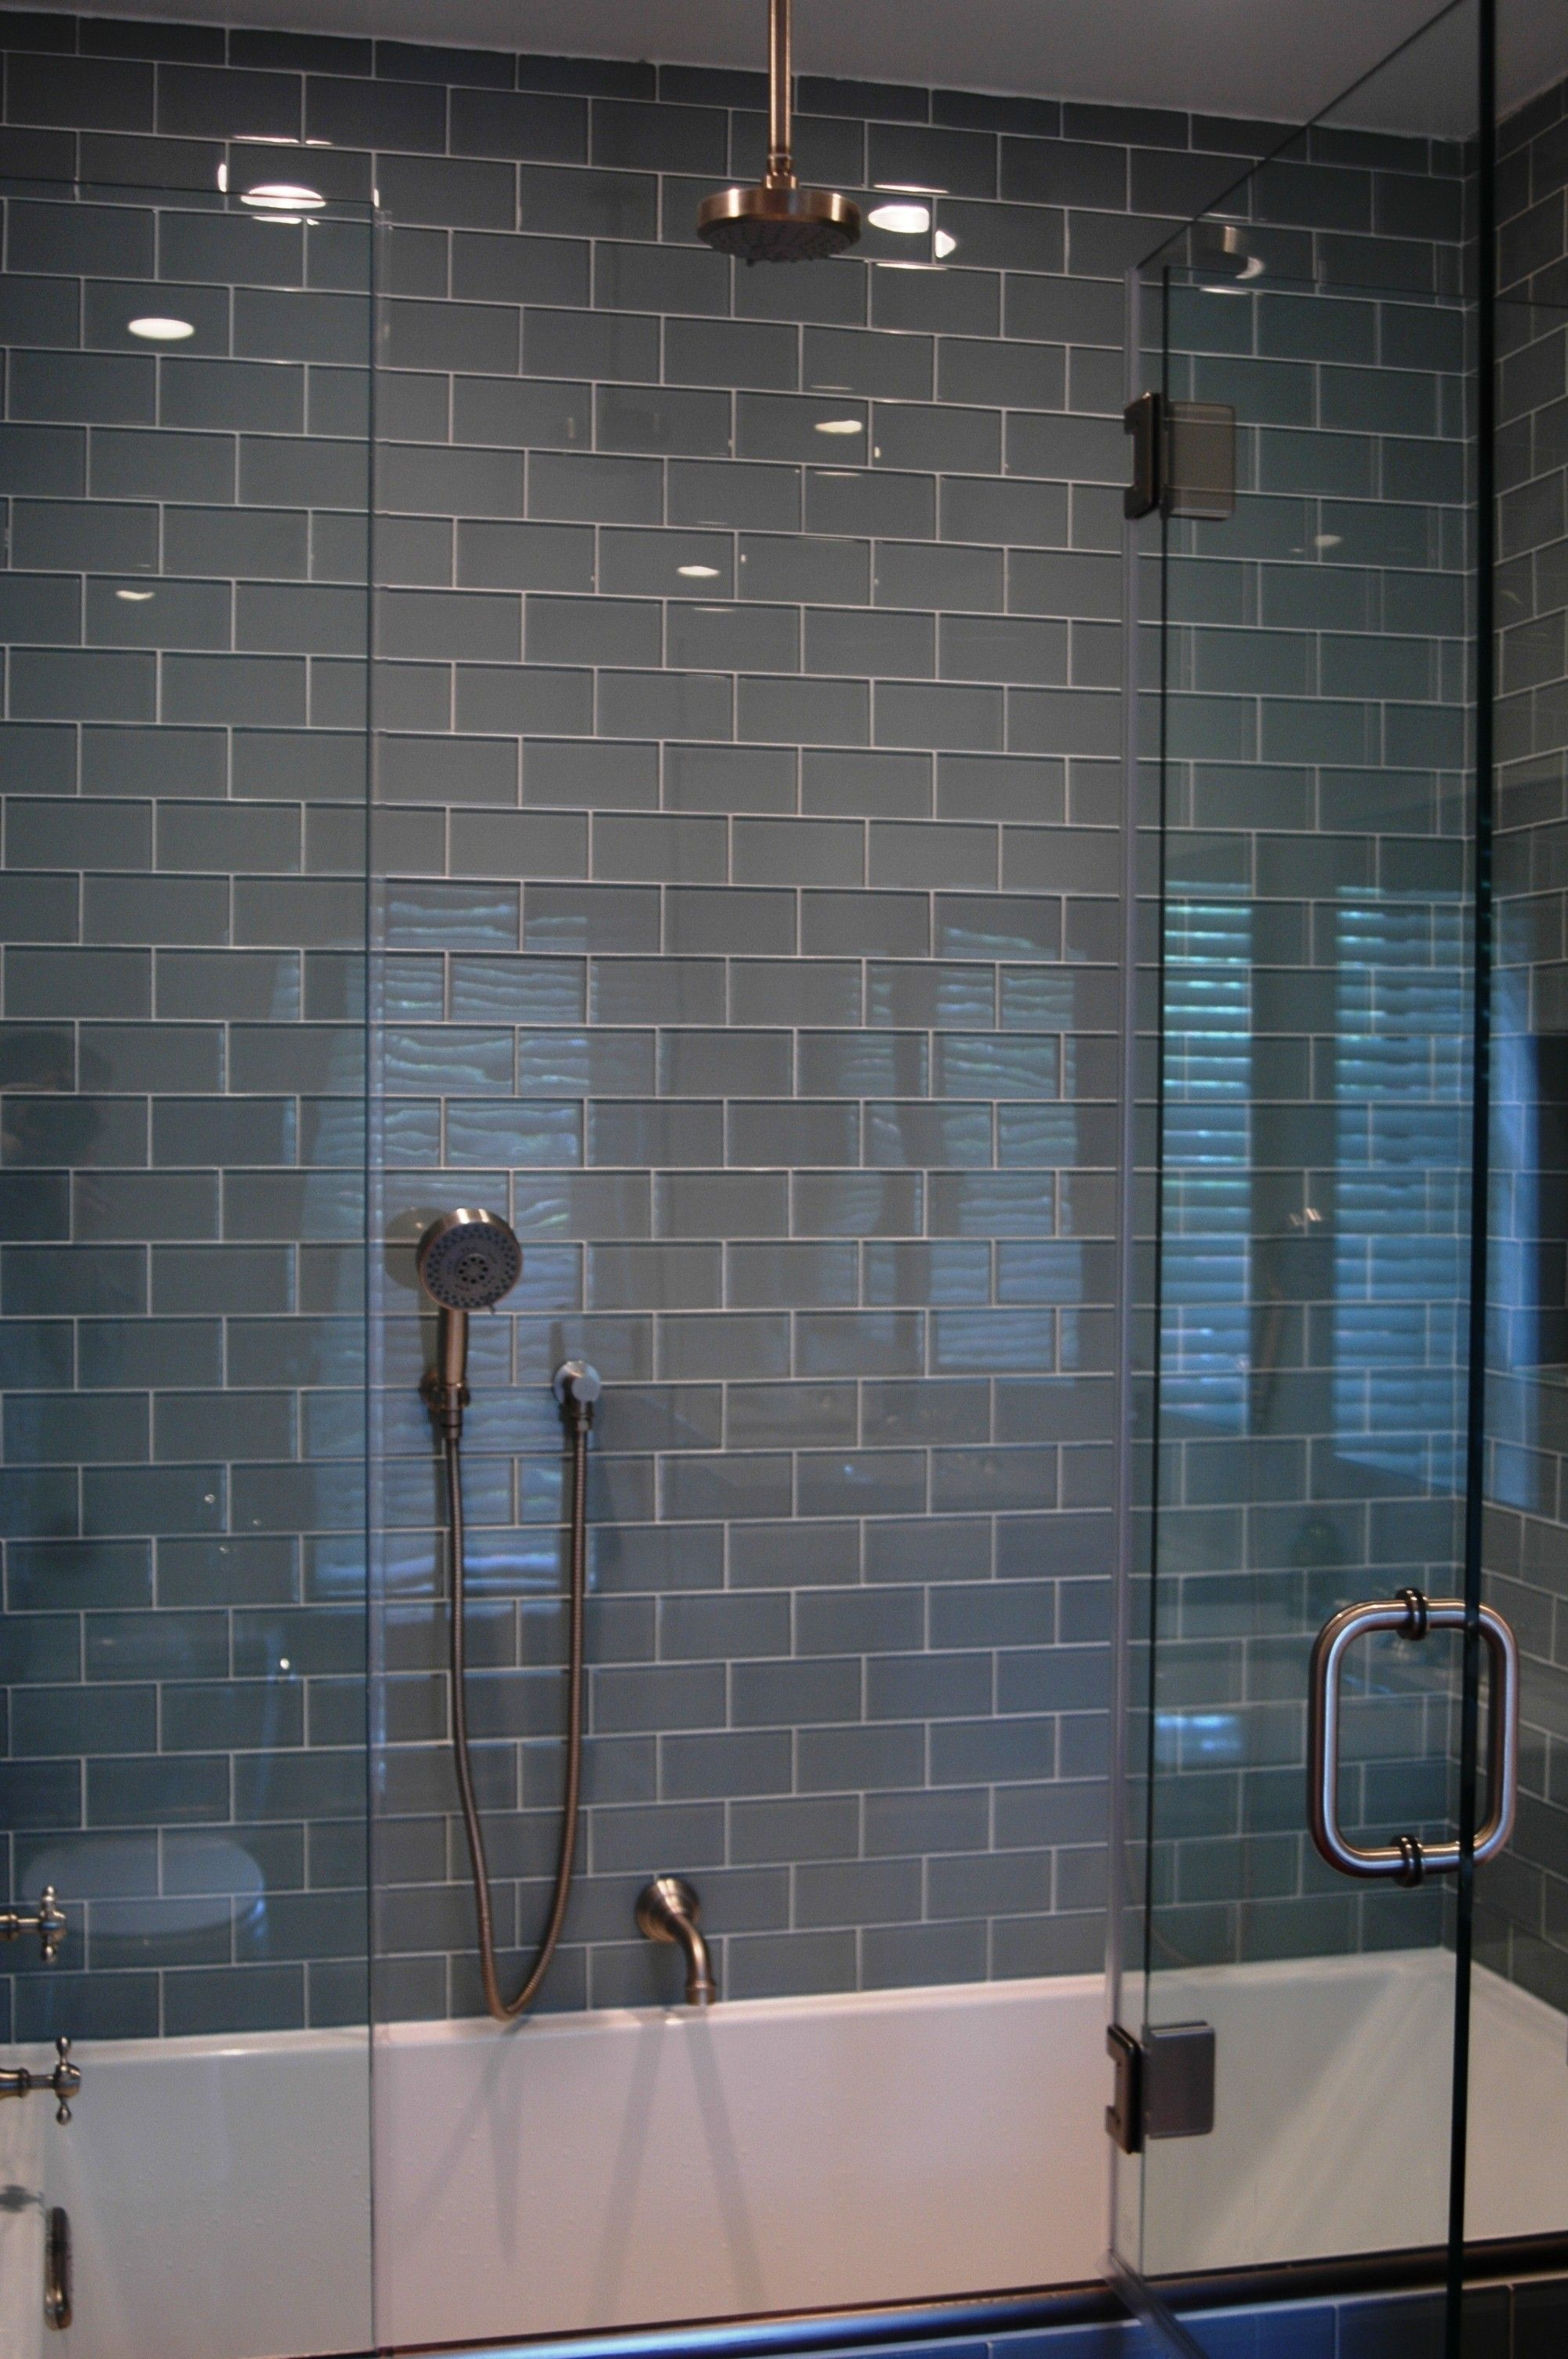 Lush 3x6 fog bank light gray glass subway tile subway tiles attic bathroom lush fog bank 3x6 gray subway tile shower wall installation dailygadgetfo Image collections